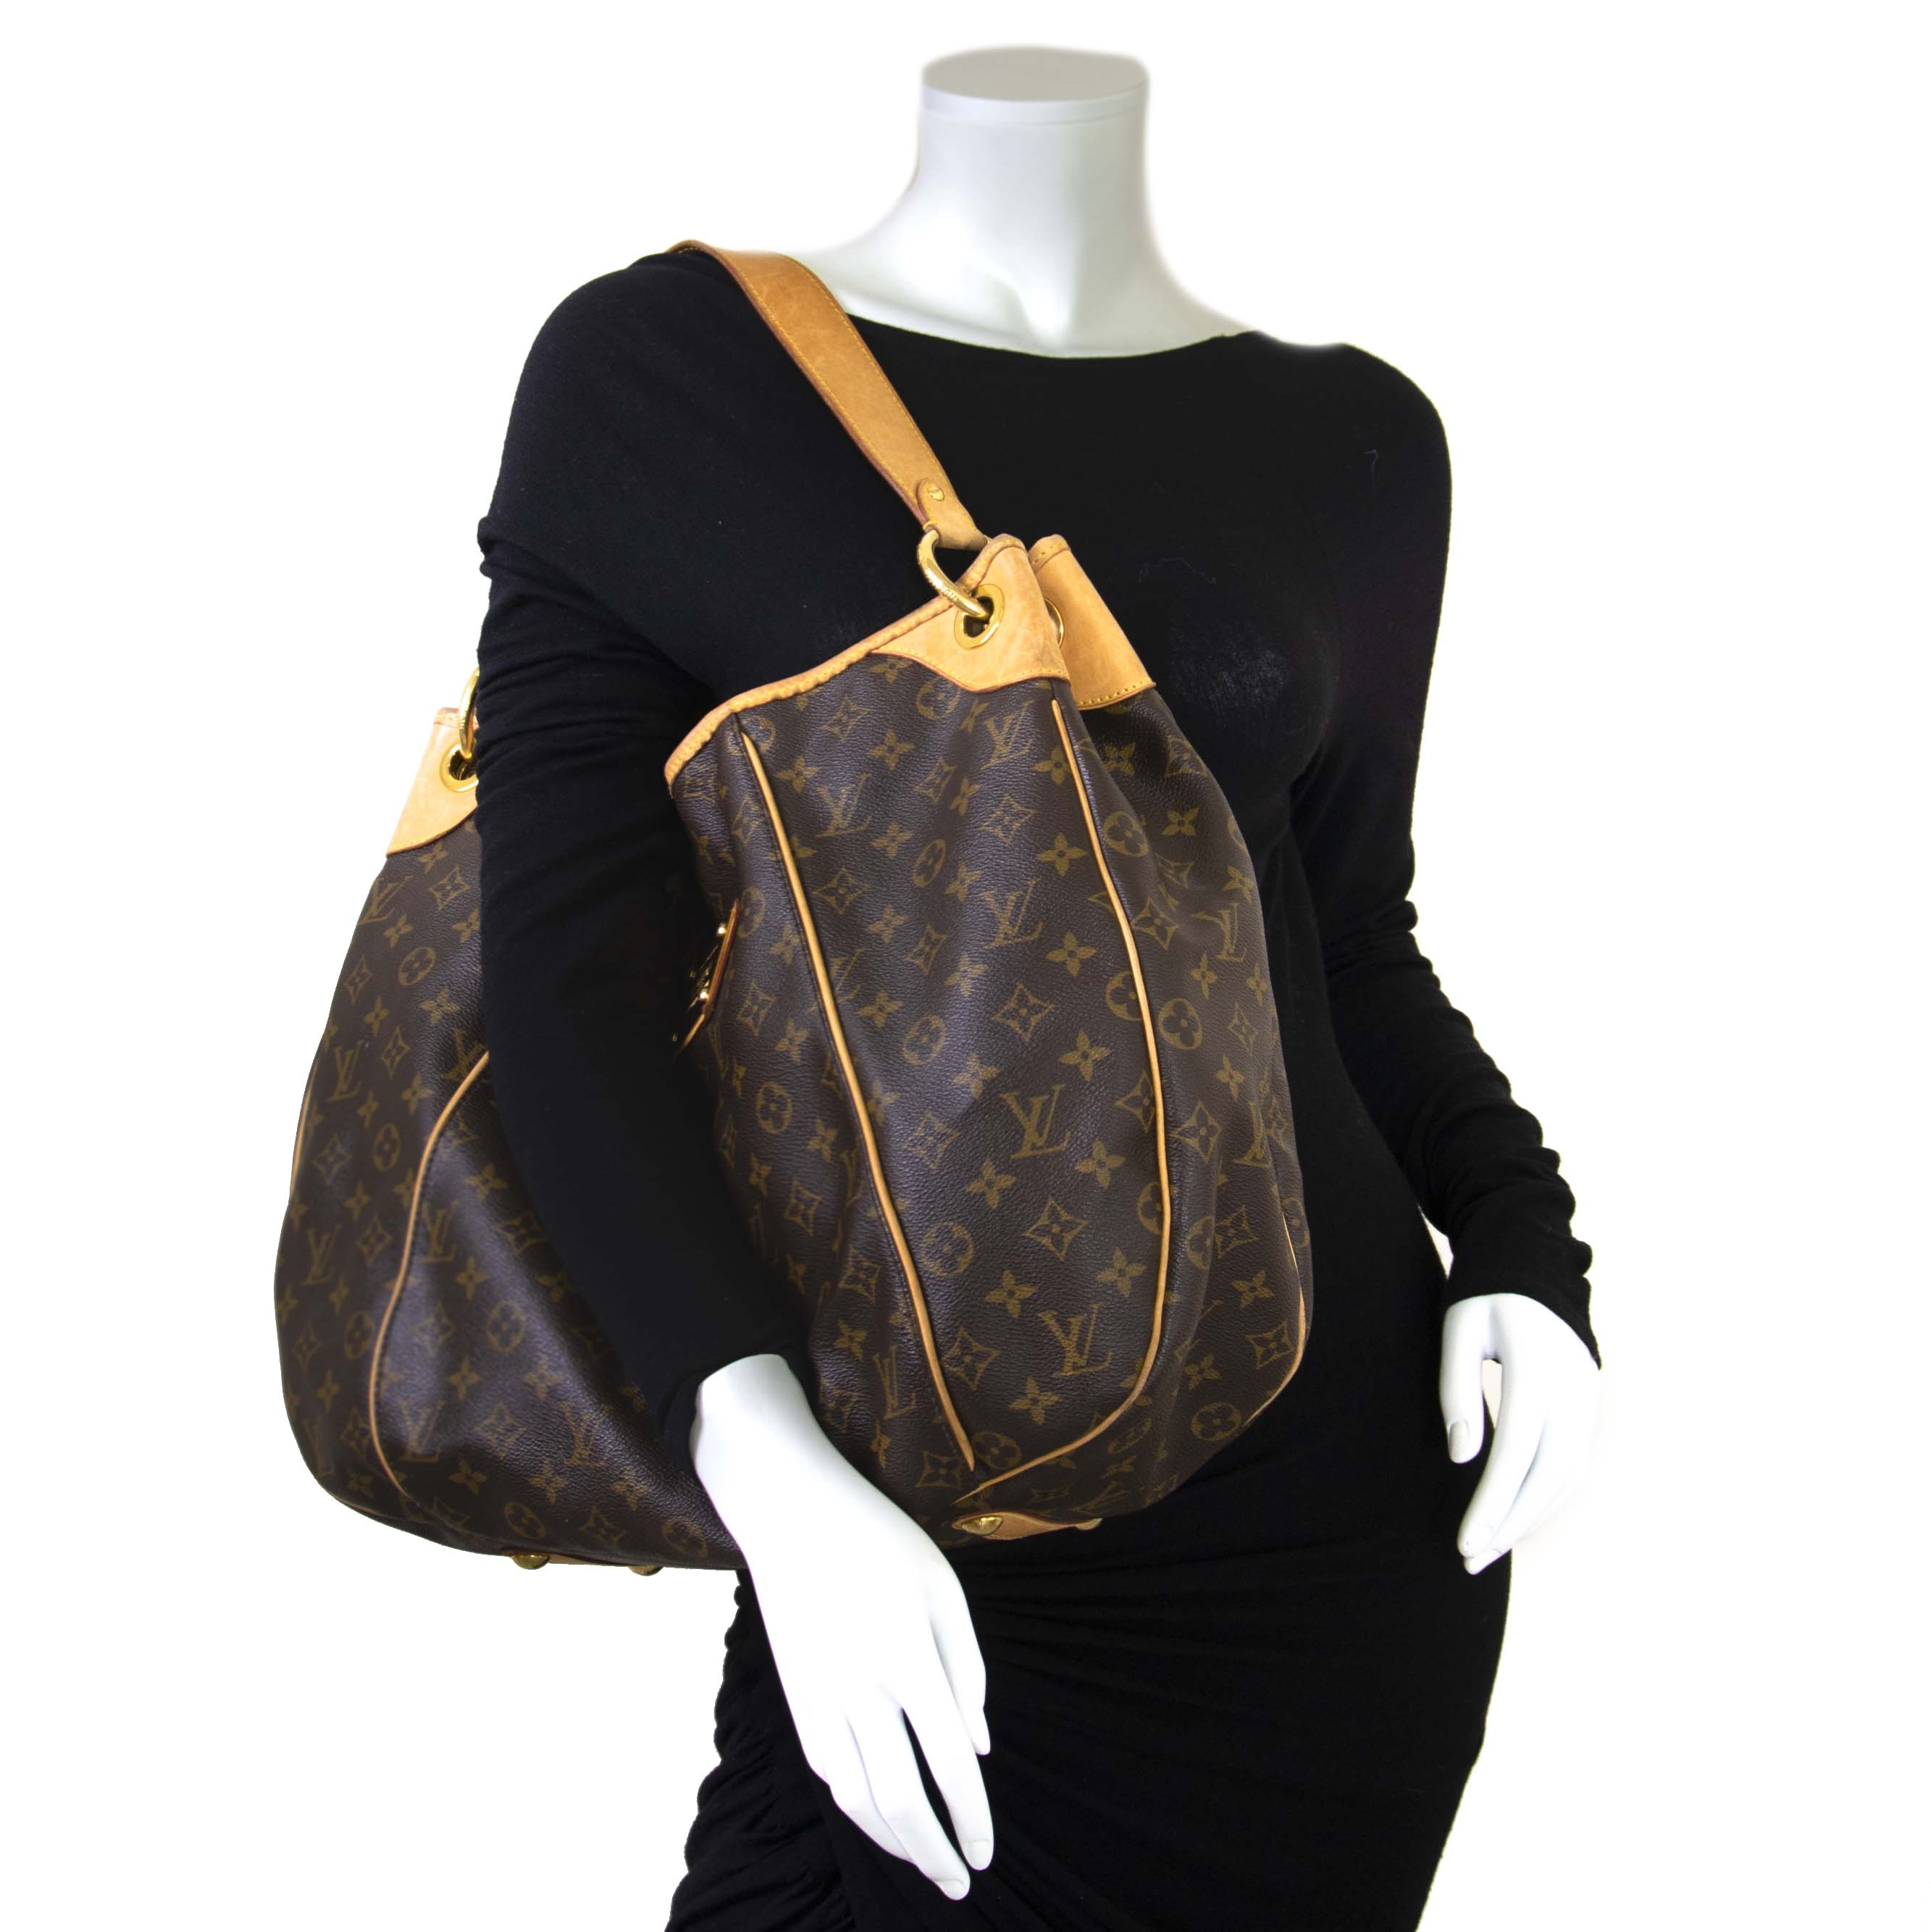 47f5e8195d95 ... Louis Vuitton Monogram Canvas Galliera Shoulder Bag outfit online at  Labellov